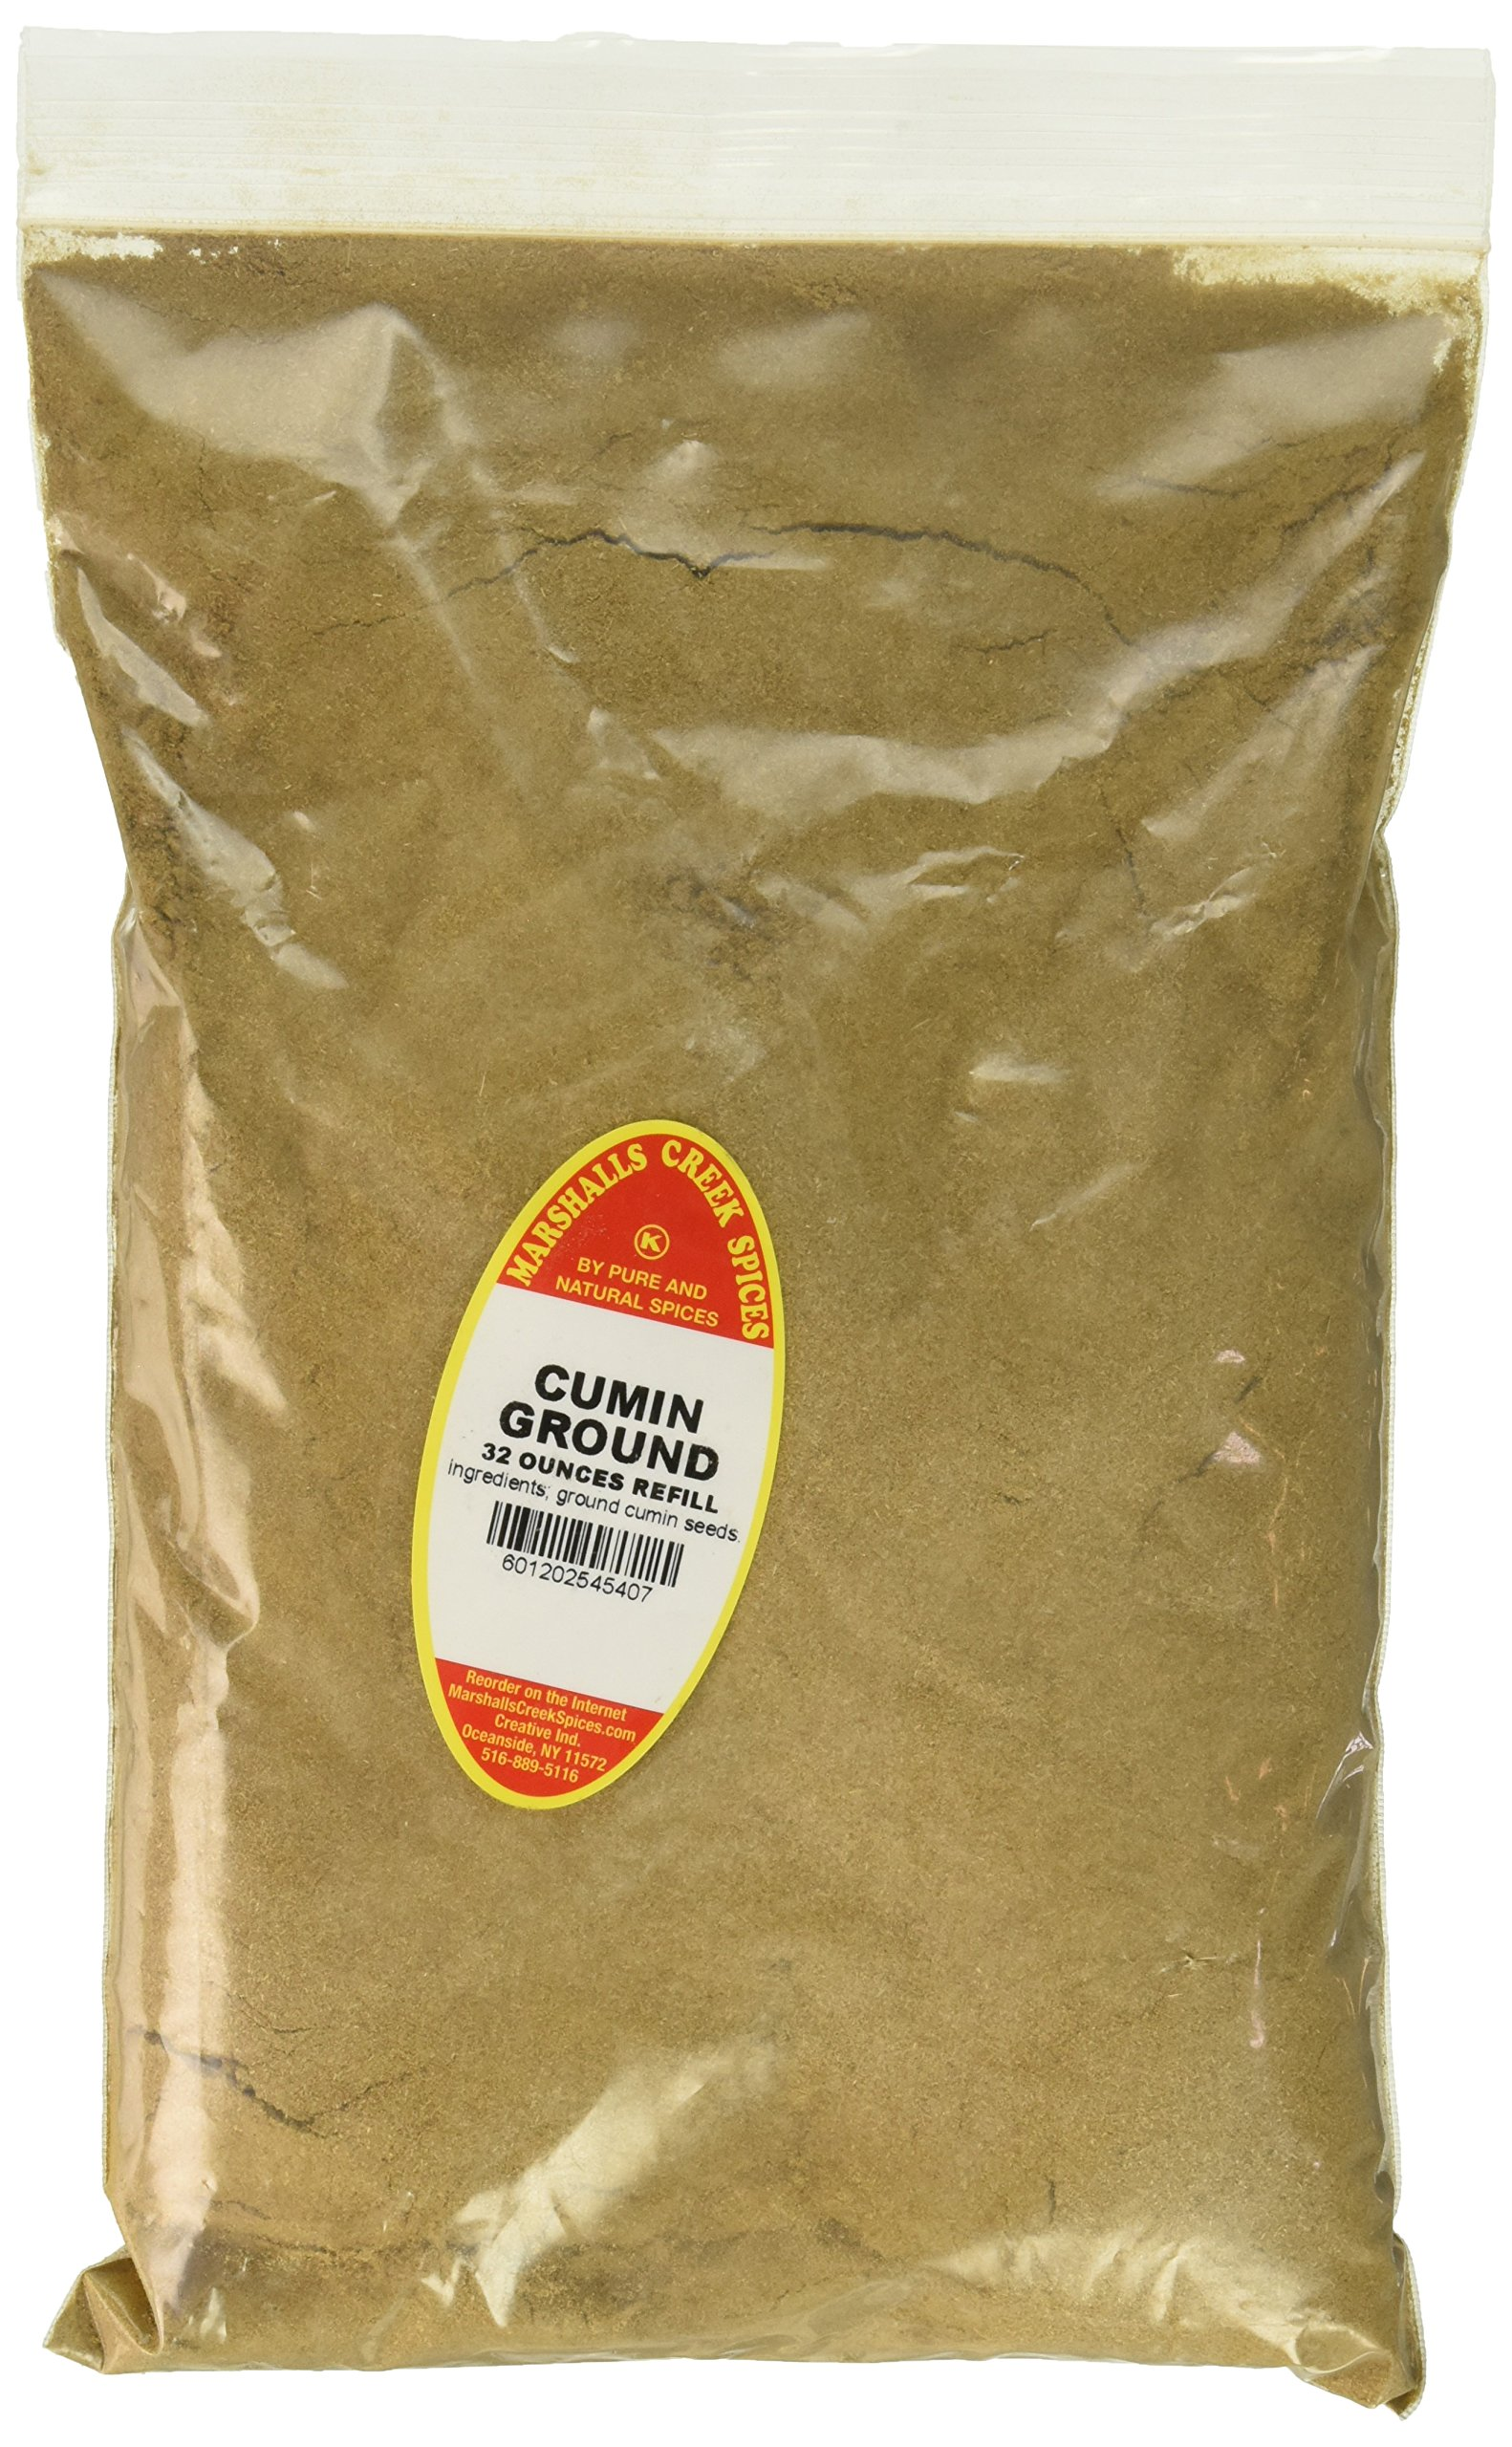 Marshalls Creek Spices Family Size Kosher Cumin Ground Refill, 32 Ounce